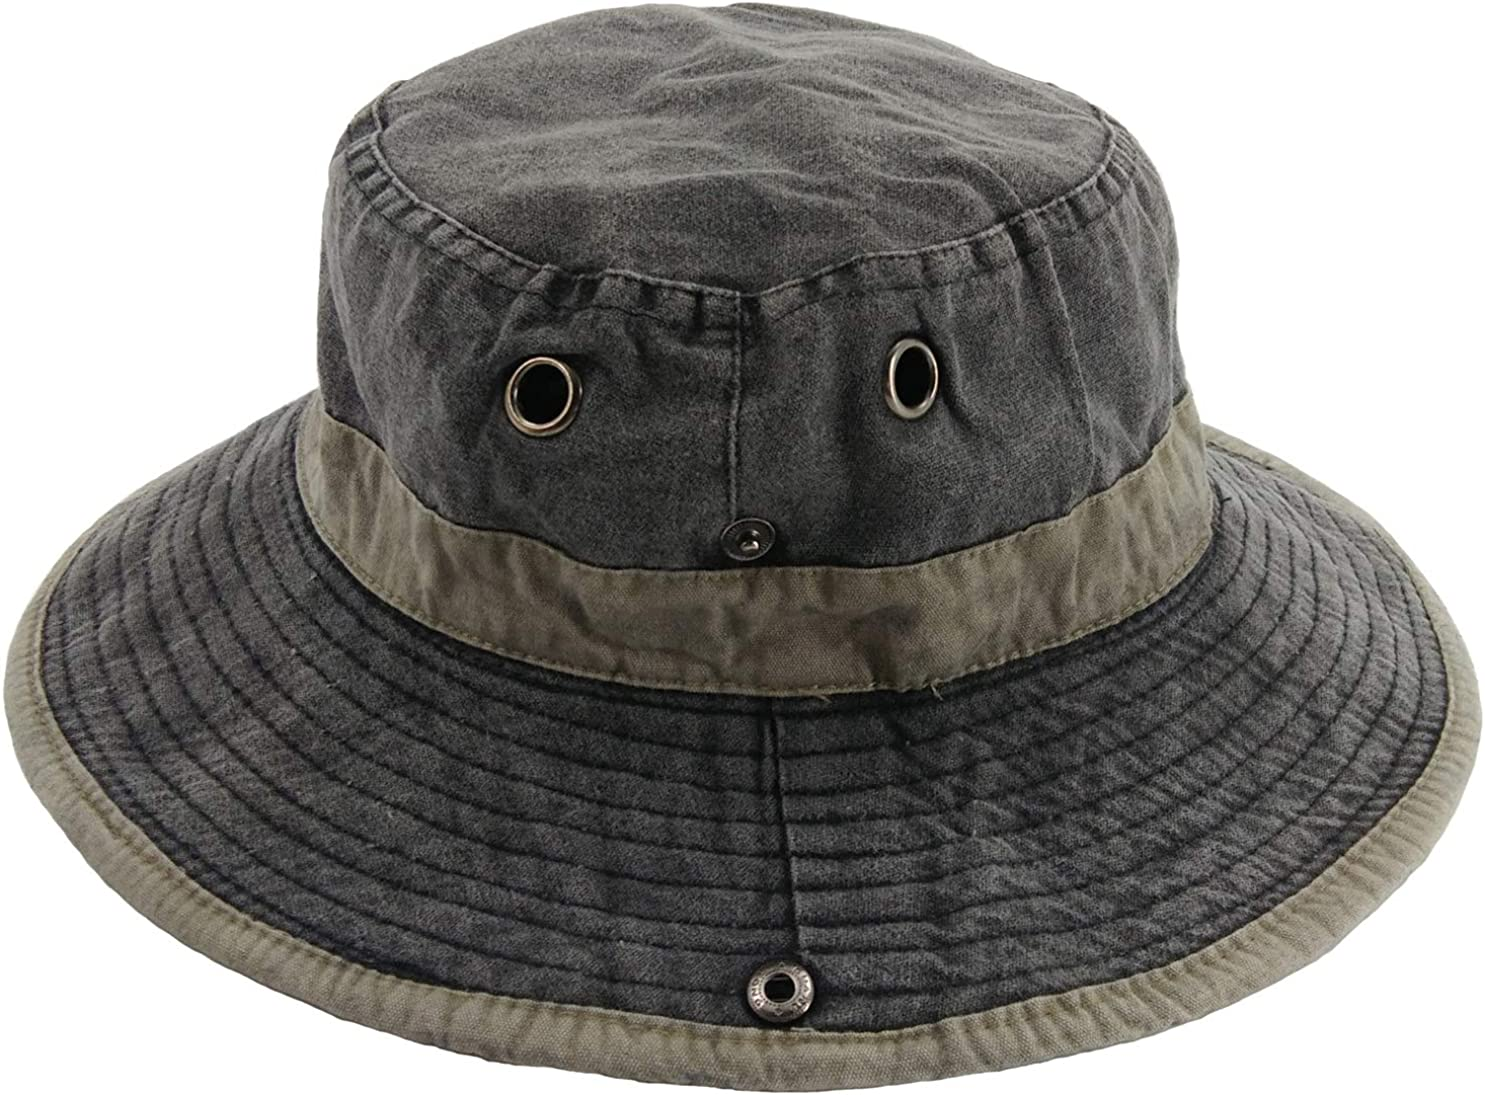 Ledamon Men's Sun Hat Fisherman Hat UV Protection Outdoor Hiking Fishing Washed Cotton Hat (Charcoal Grey) at  Men's Clothing store